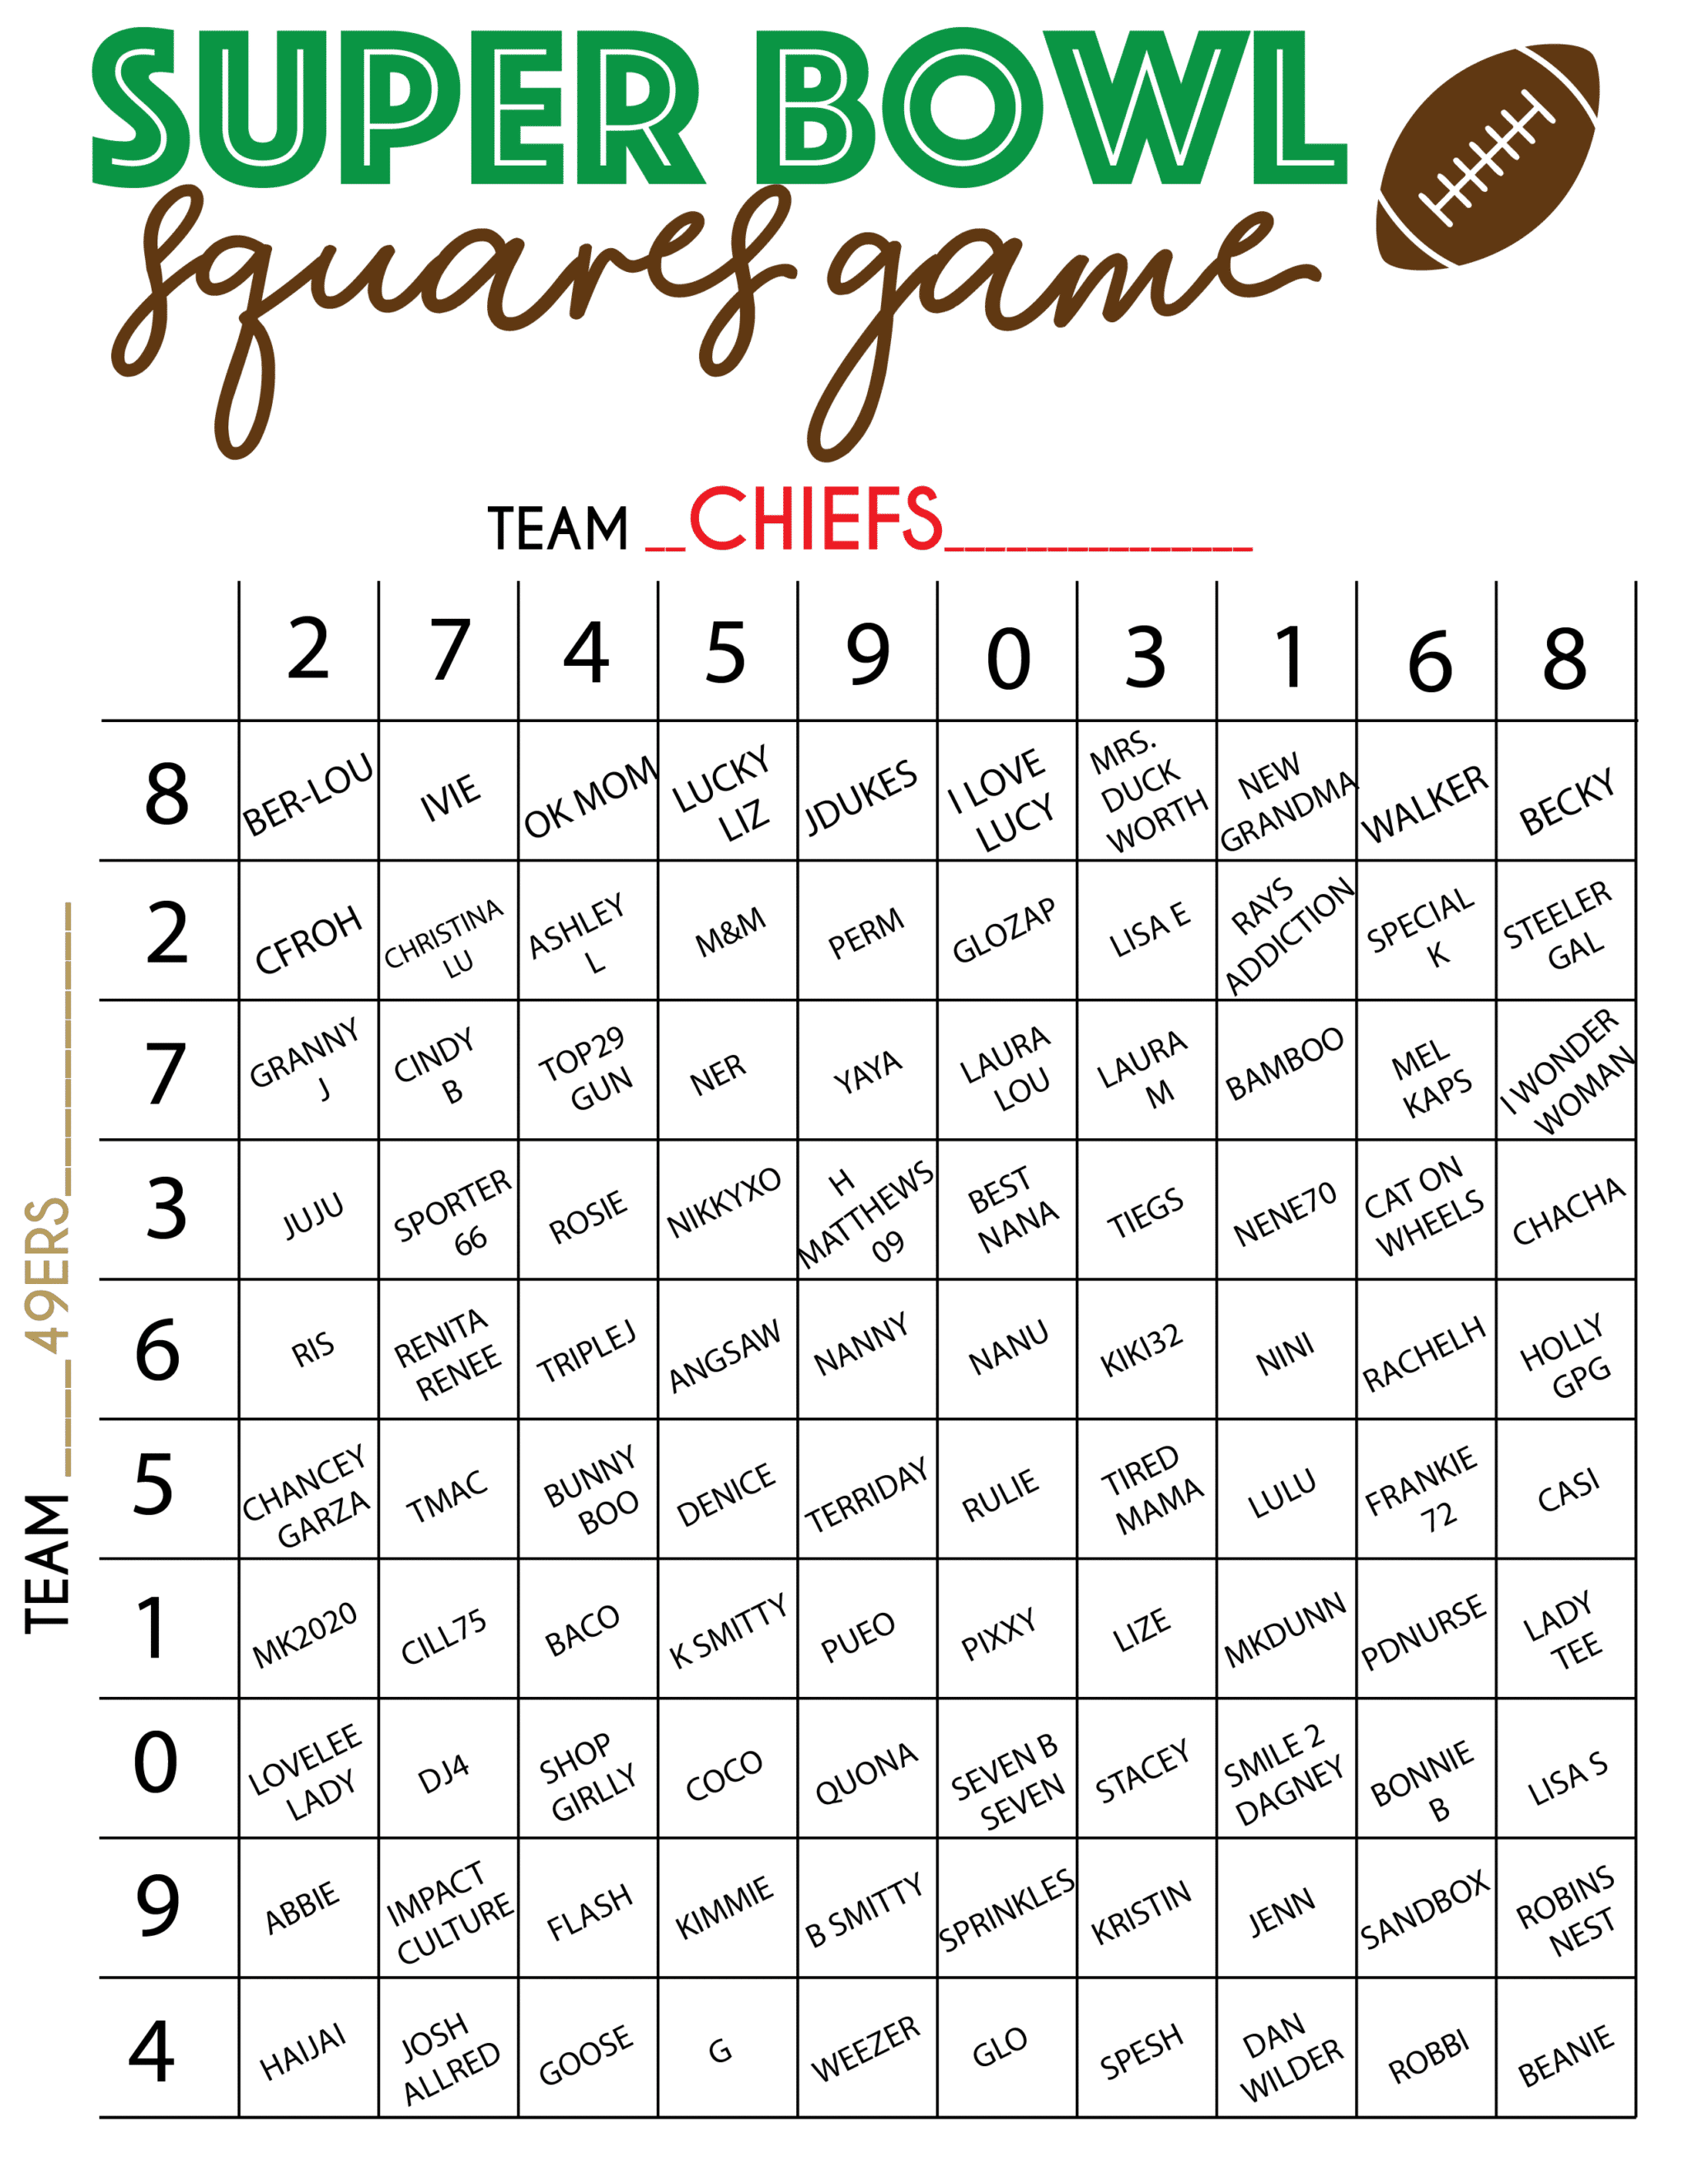 This is an image of Super Bowl Squares Printable pertaining to free printable